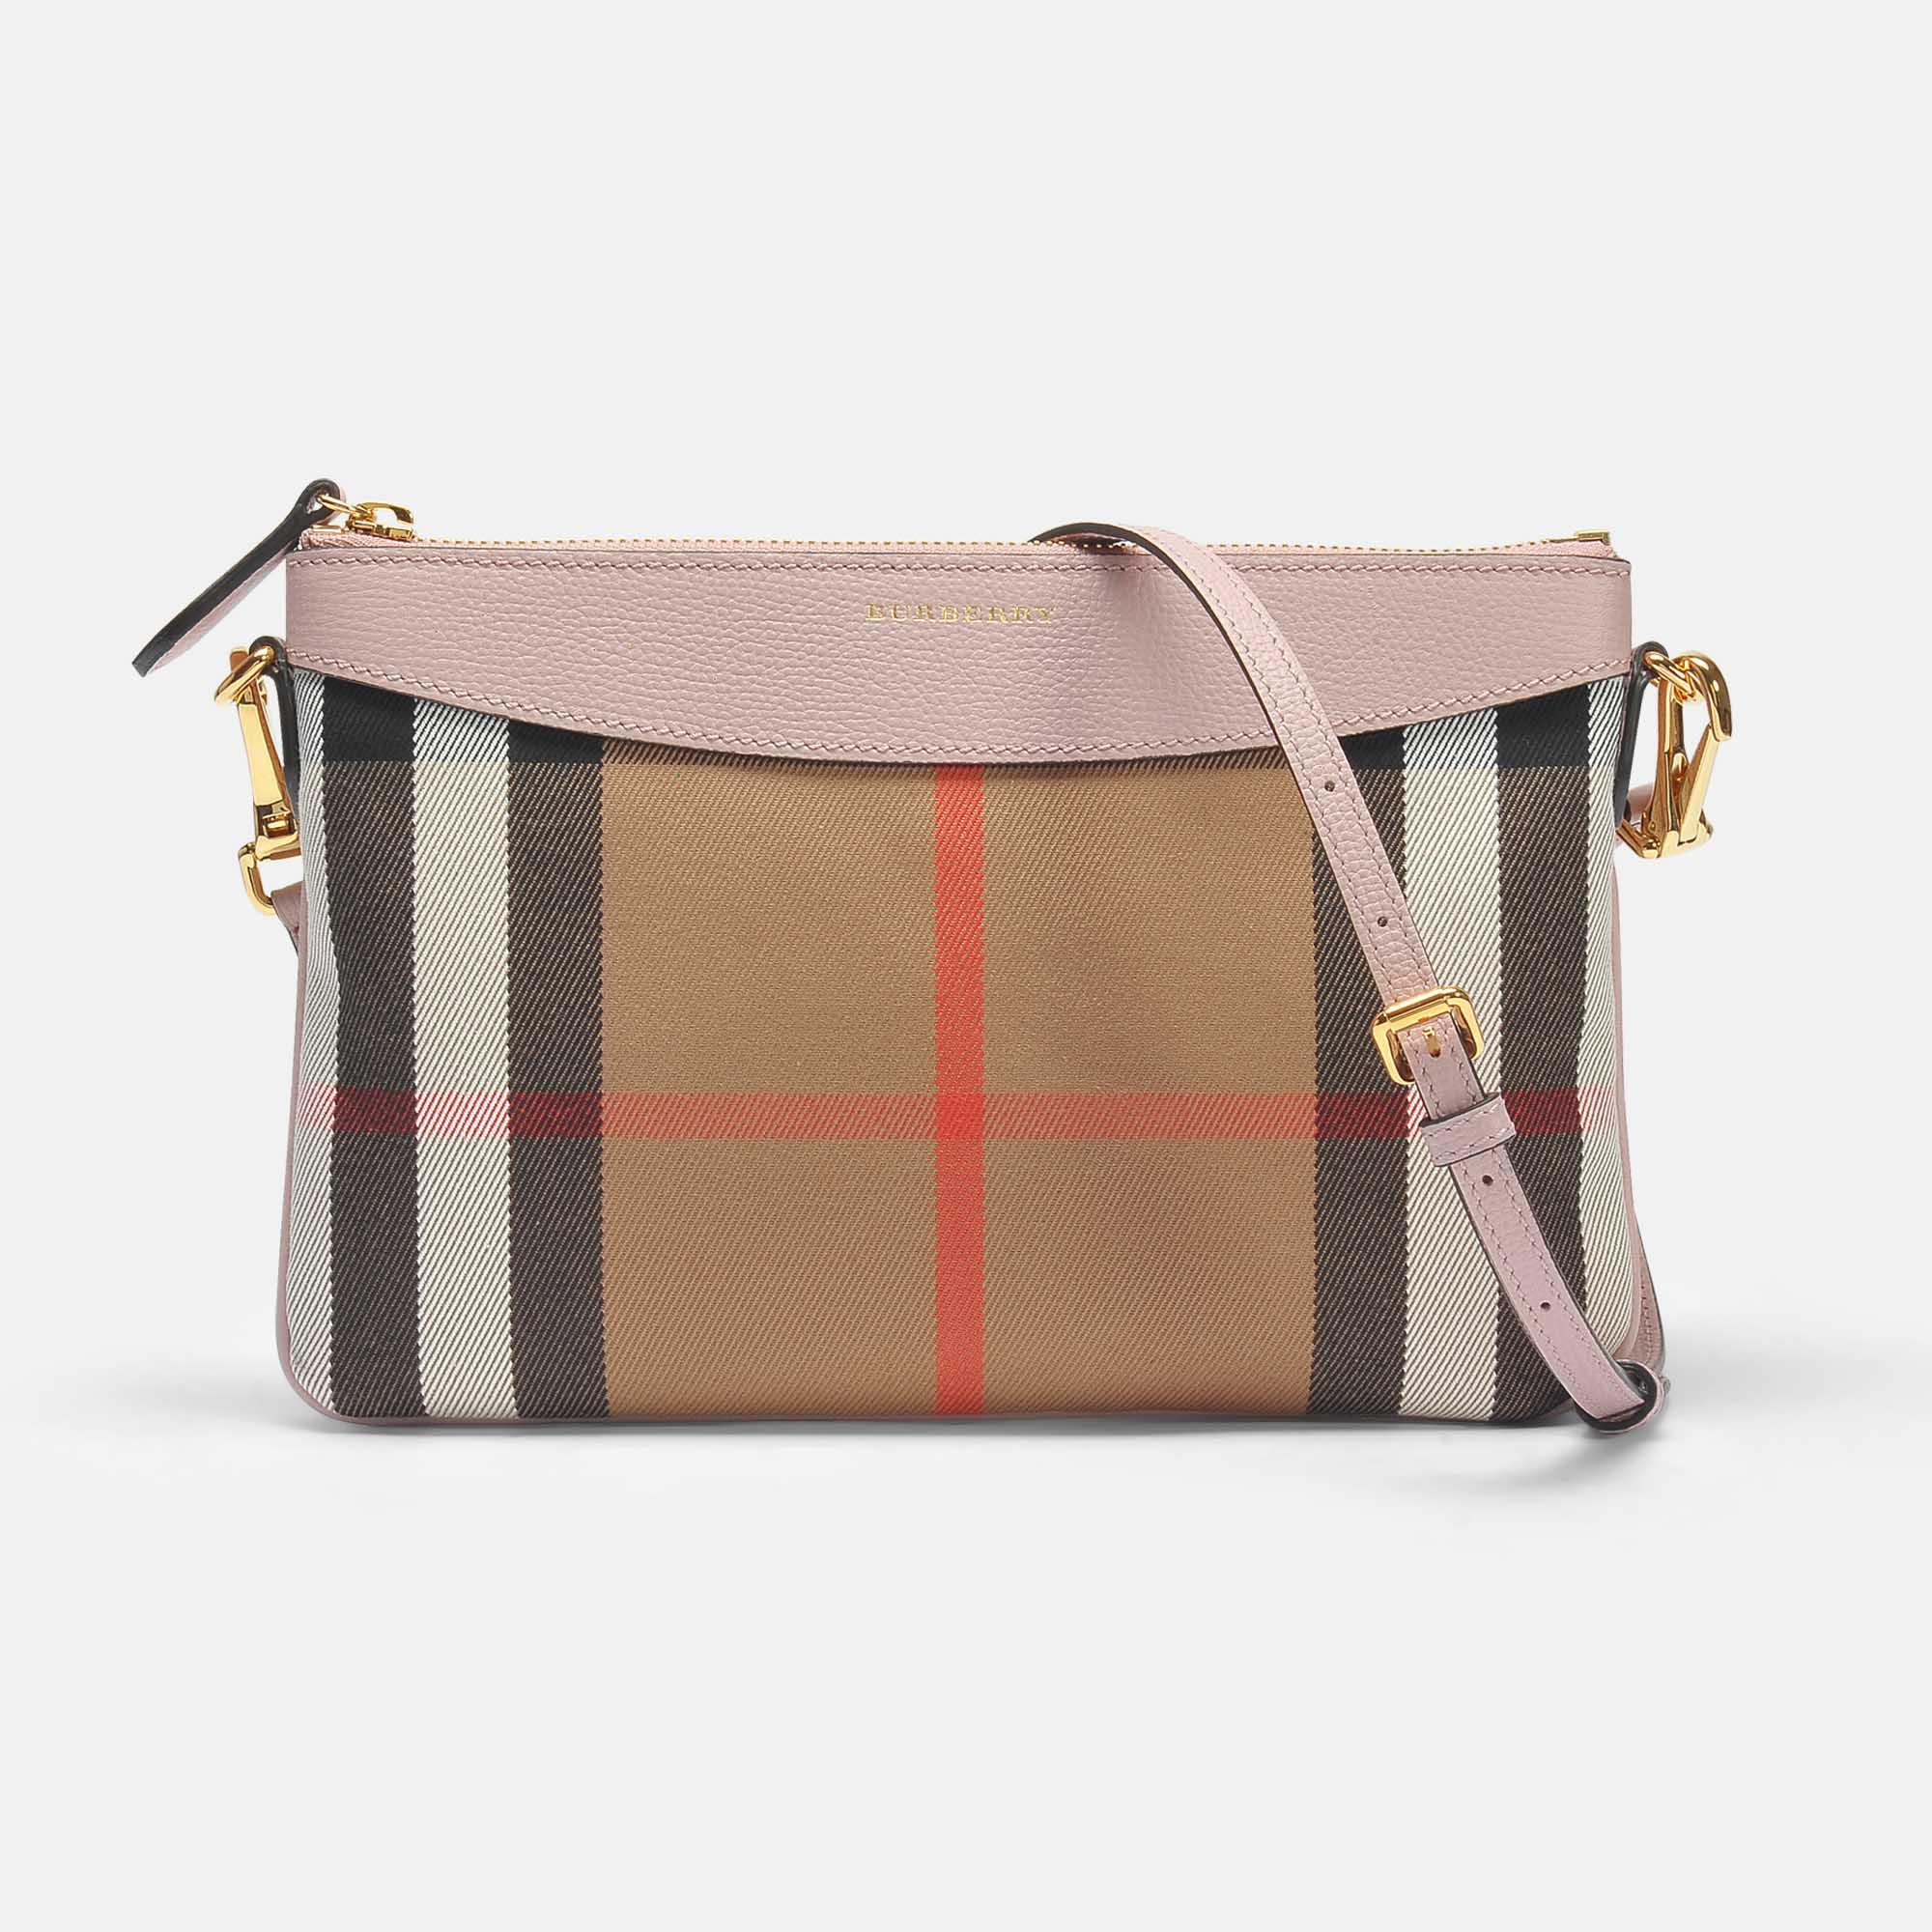 Peyton Pouch Bag in Black Grained Calfskin Burberry Manchester Great Sale Cheap Price Buy Cheap Clearance Store 100% Guaranteed For Sale Clearance Good Selling Discount Get Authentic TvQf5su0Pu